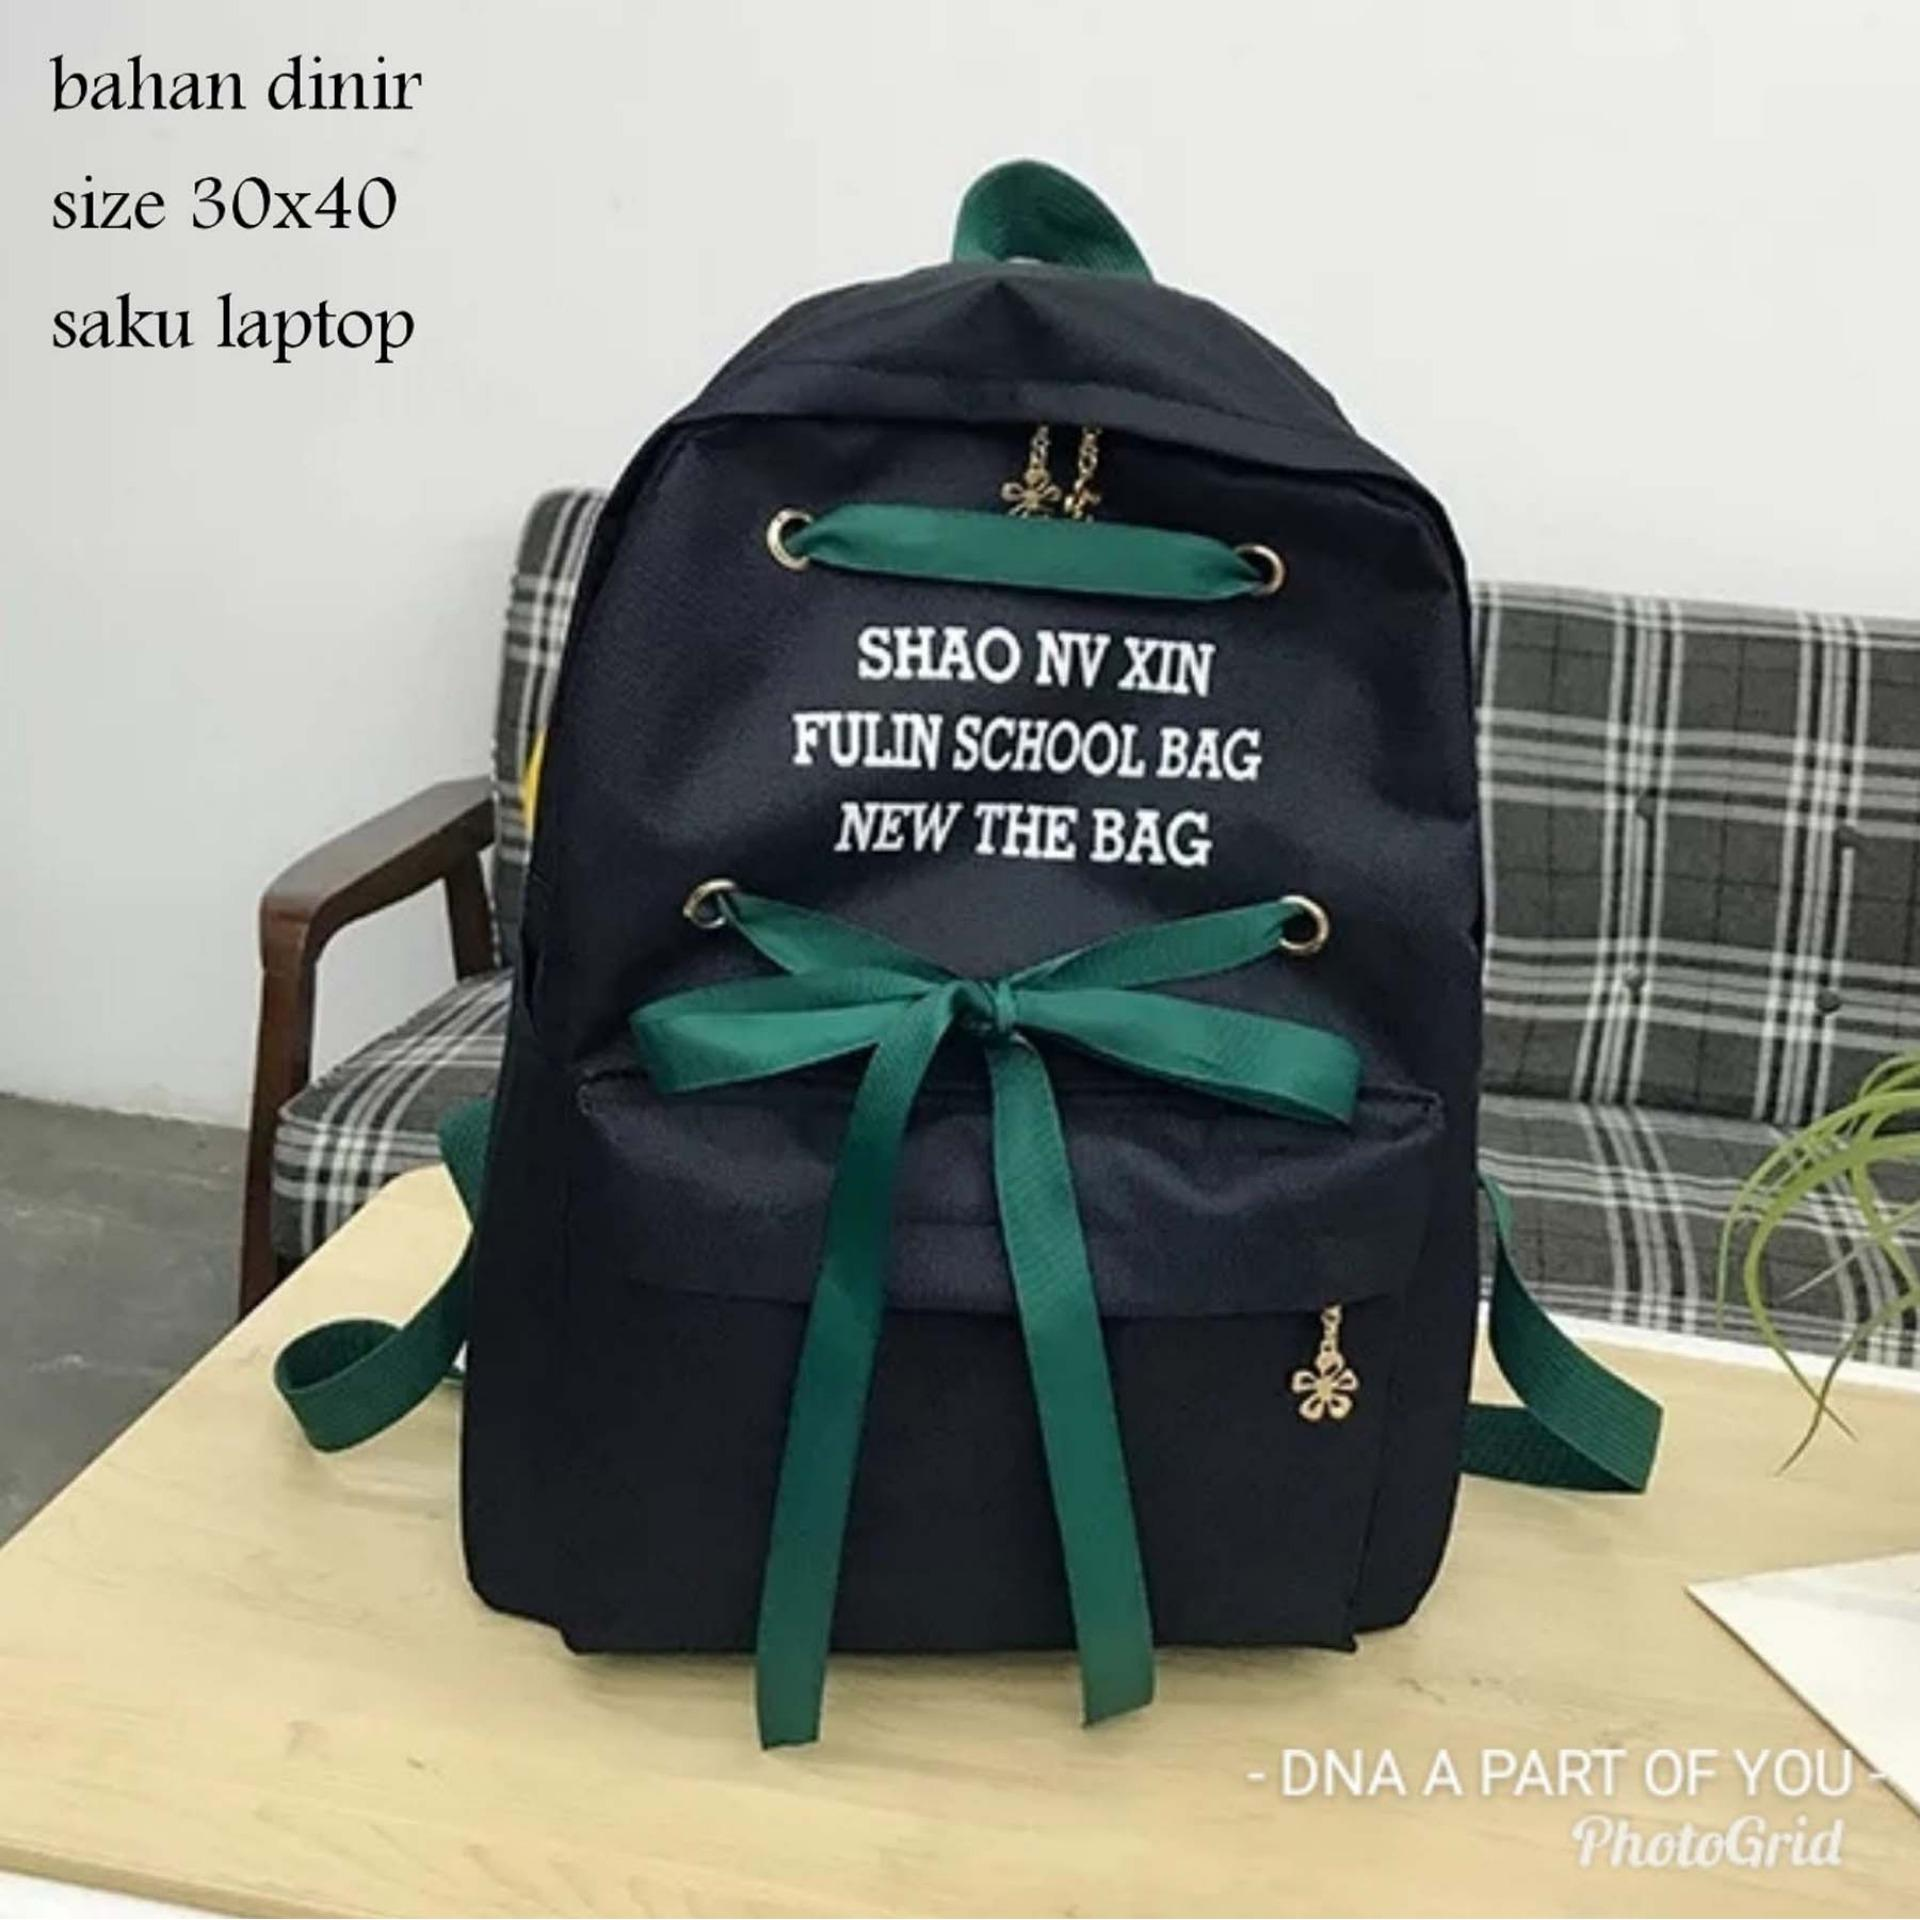 Amaryllis Backpack Korean Style DNA SHAO / Tas Ransel Wanita / Tas Ransel Pria / Tas Ransel Anak / Tas Sekolah Anak / Tas Sekolah Korean Style